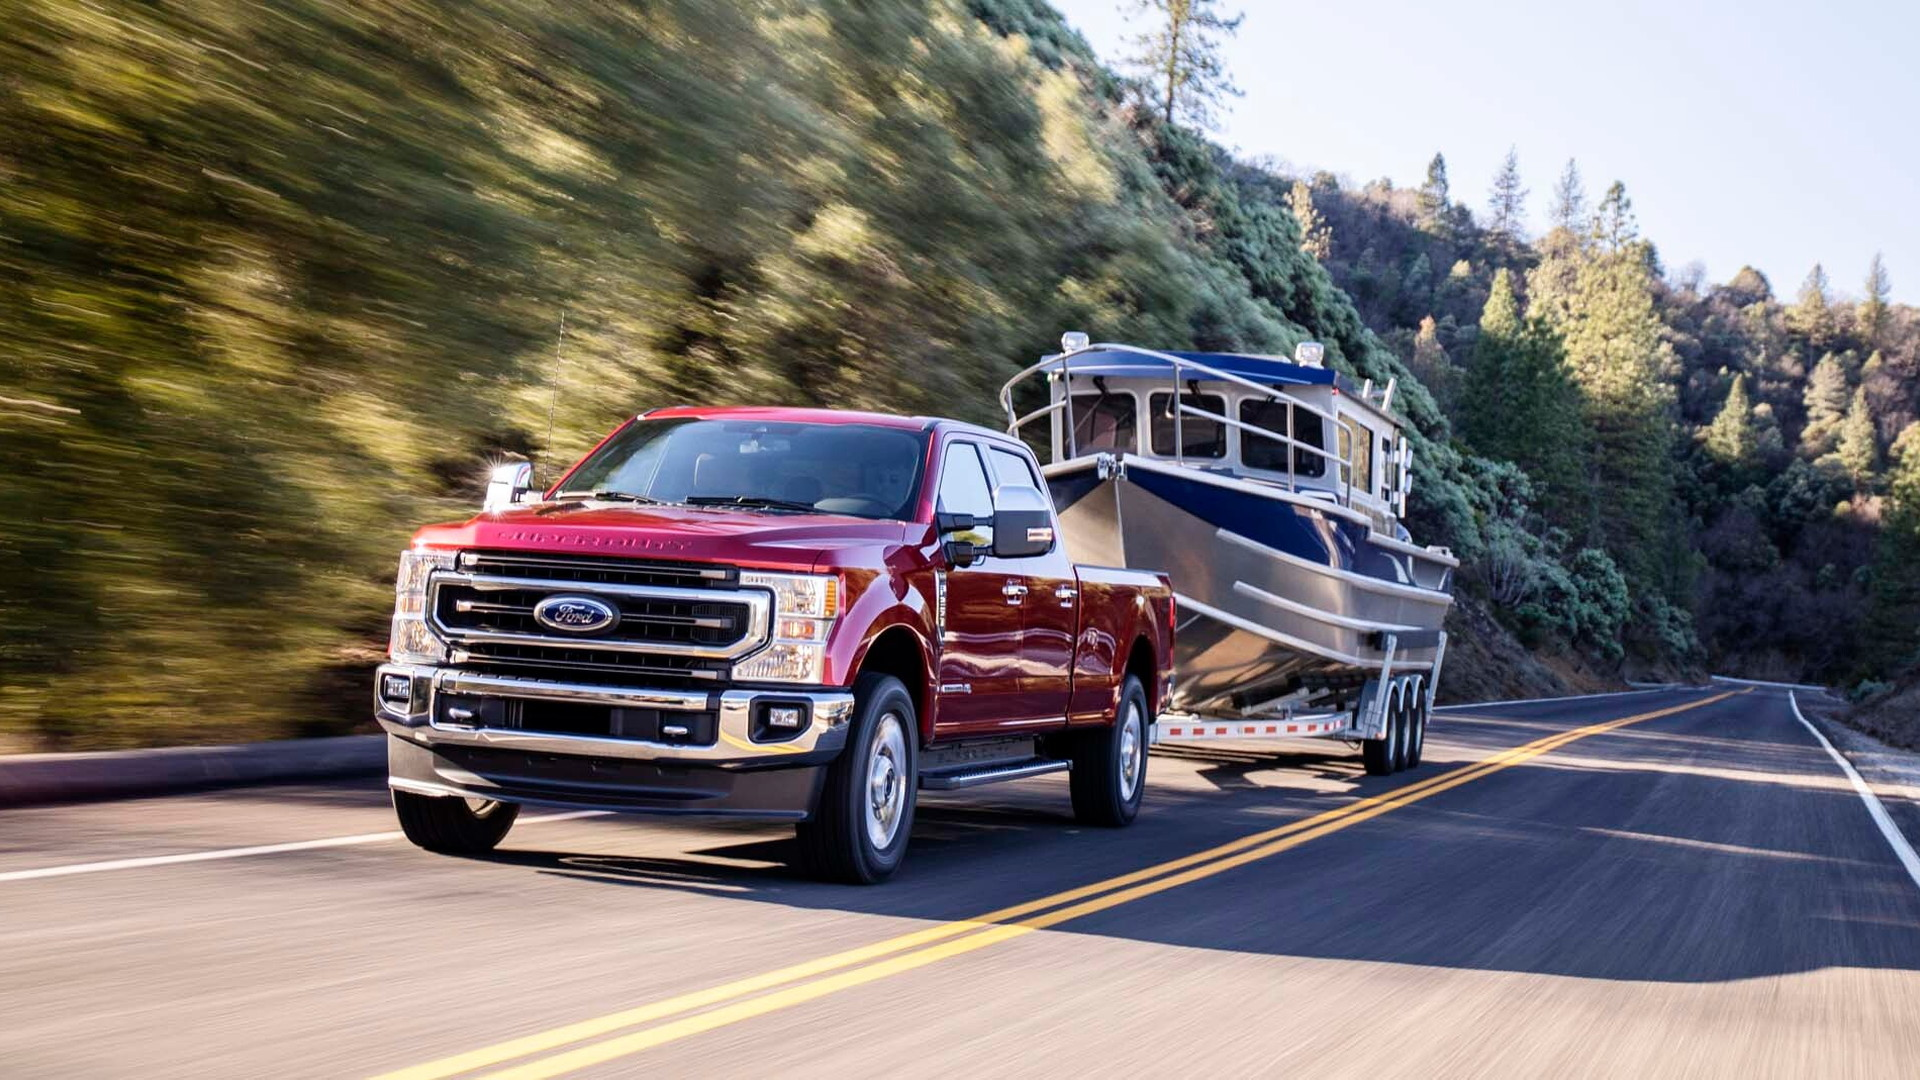 The 2020 Ford Super Duty Promises Best-In-Class Towing, Payload Capacity